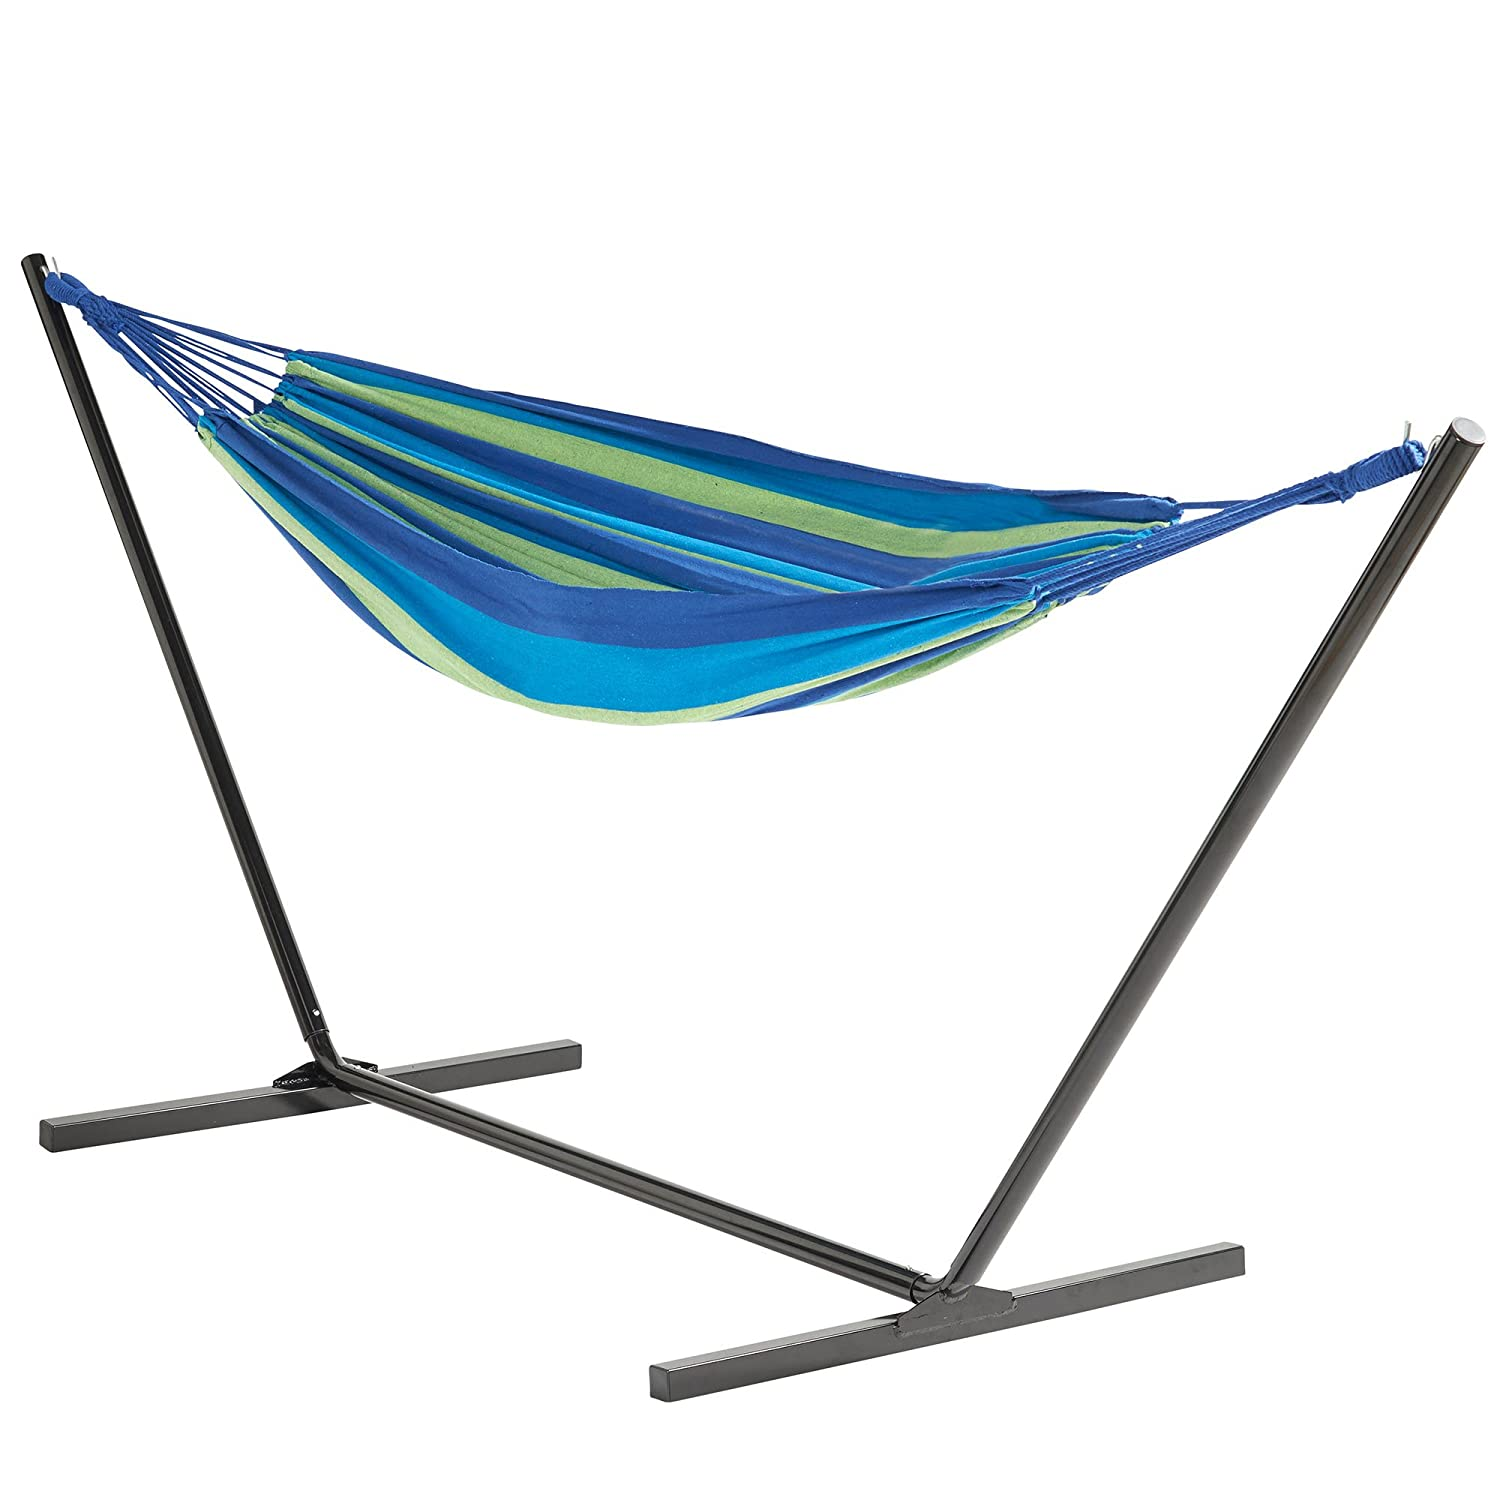 hammock improvement stand inside for home free pedersonforsenate standing accessories ideas room design awesome hardware modern